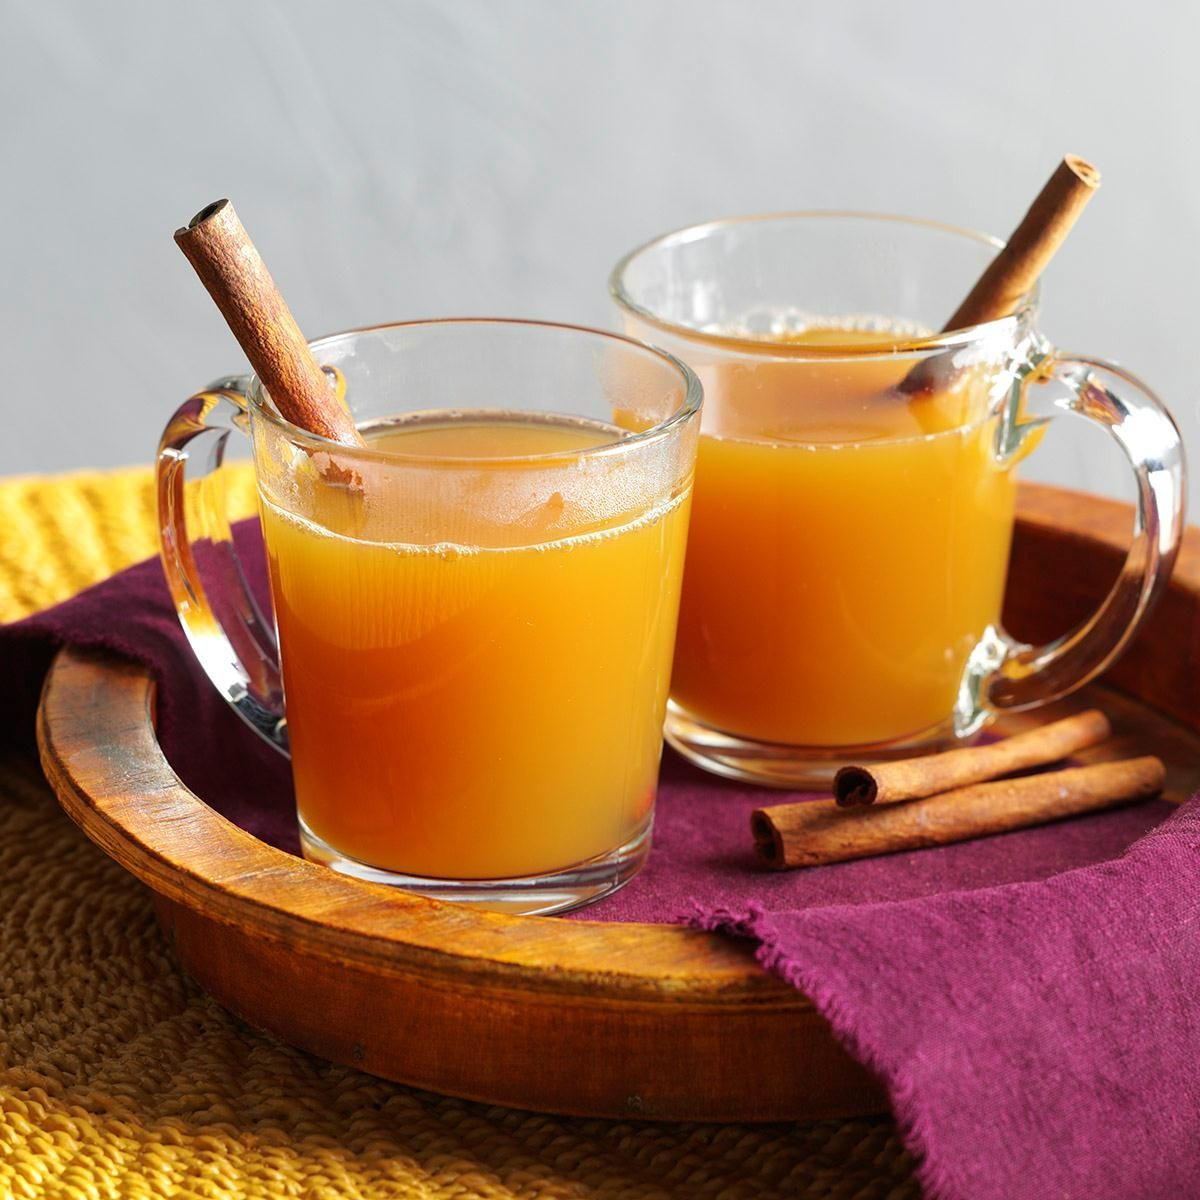 Capricorn: Spiced Hot Apple Cider